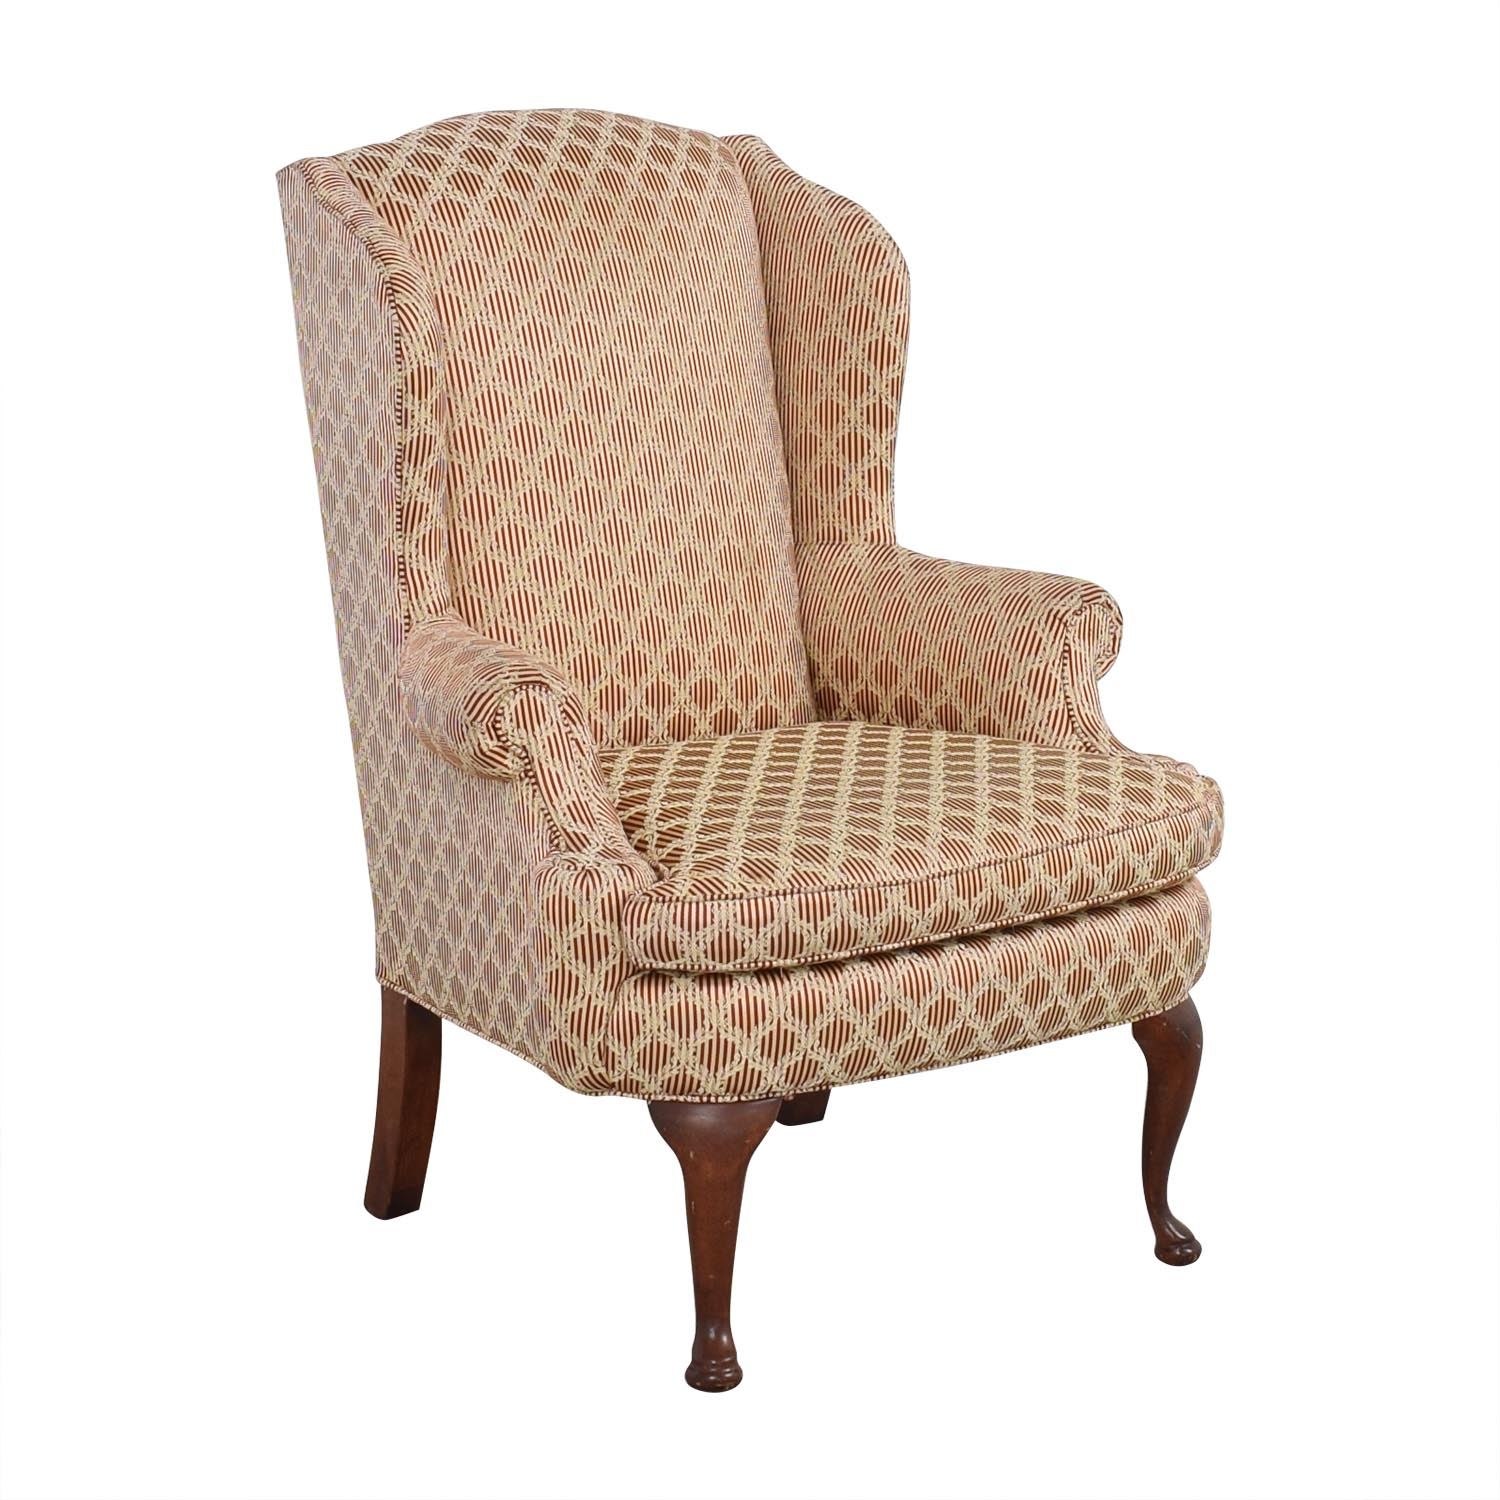 Plunkett Furniture Plunkett Upholstered Wingback Chair pa